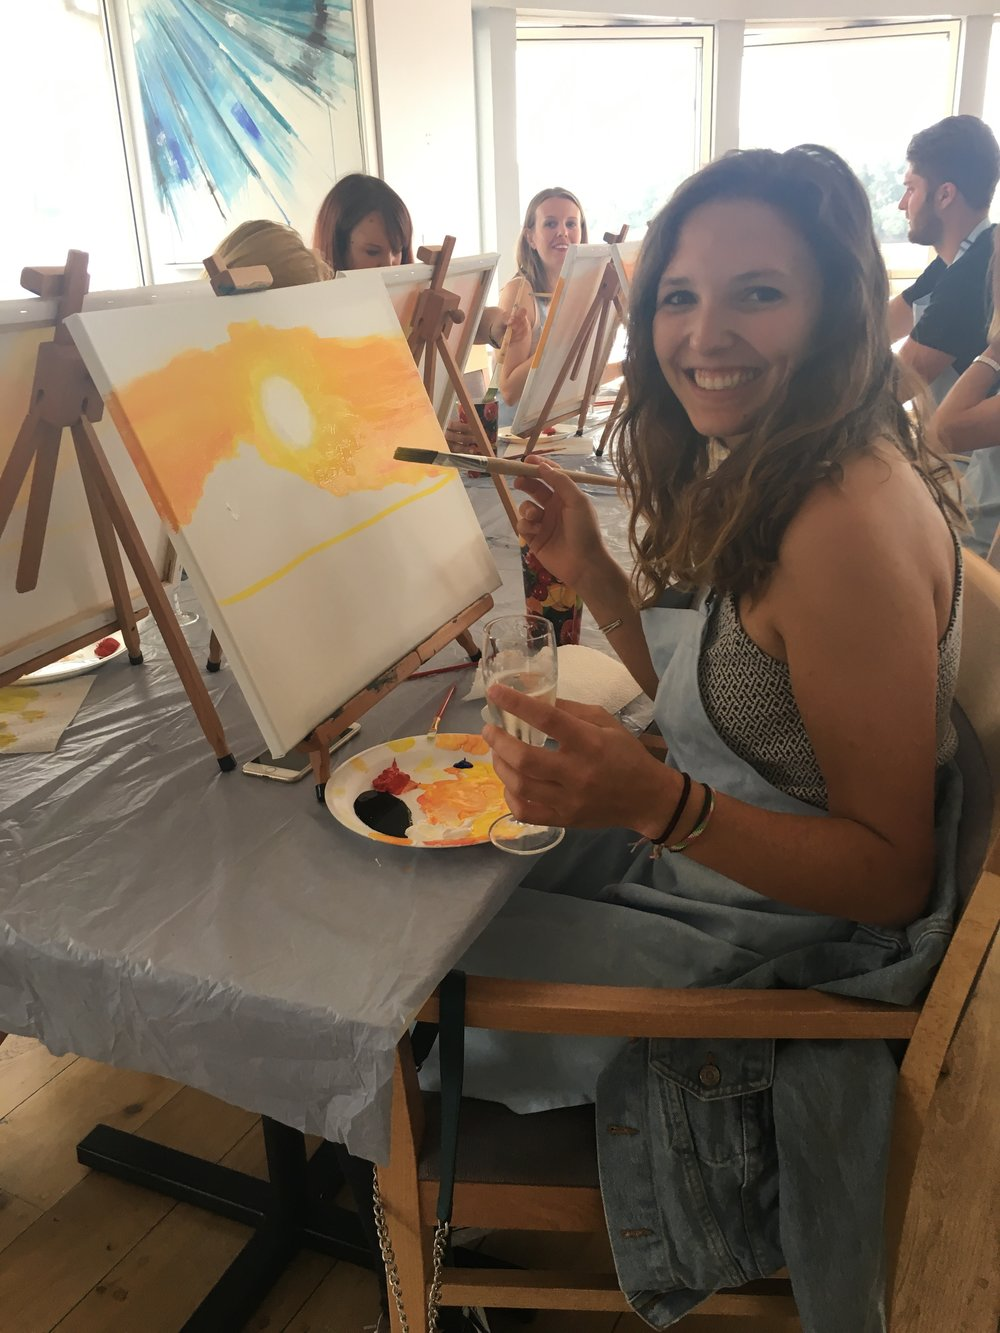 Smiling while painting a canvas